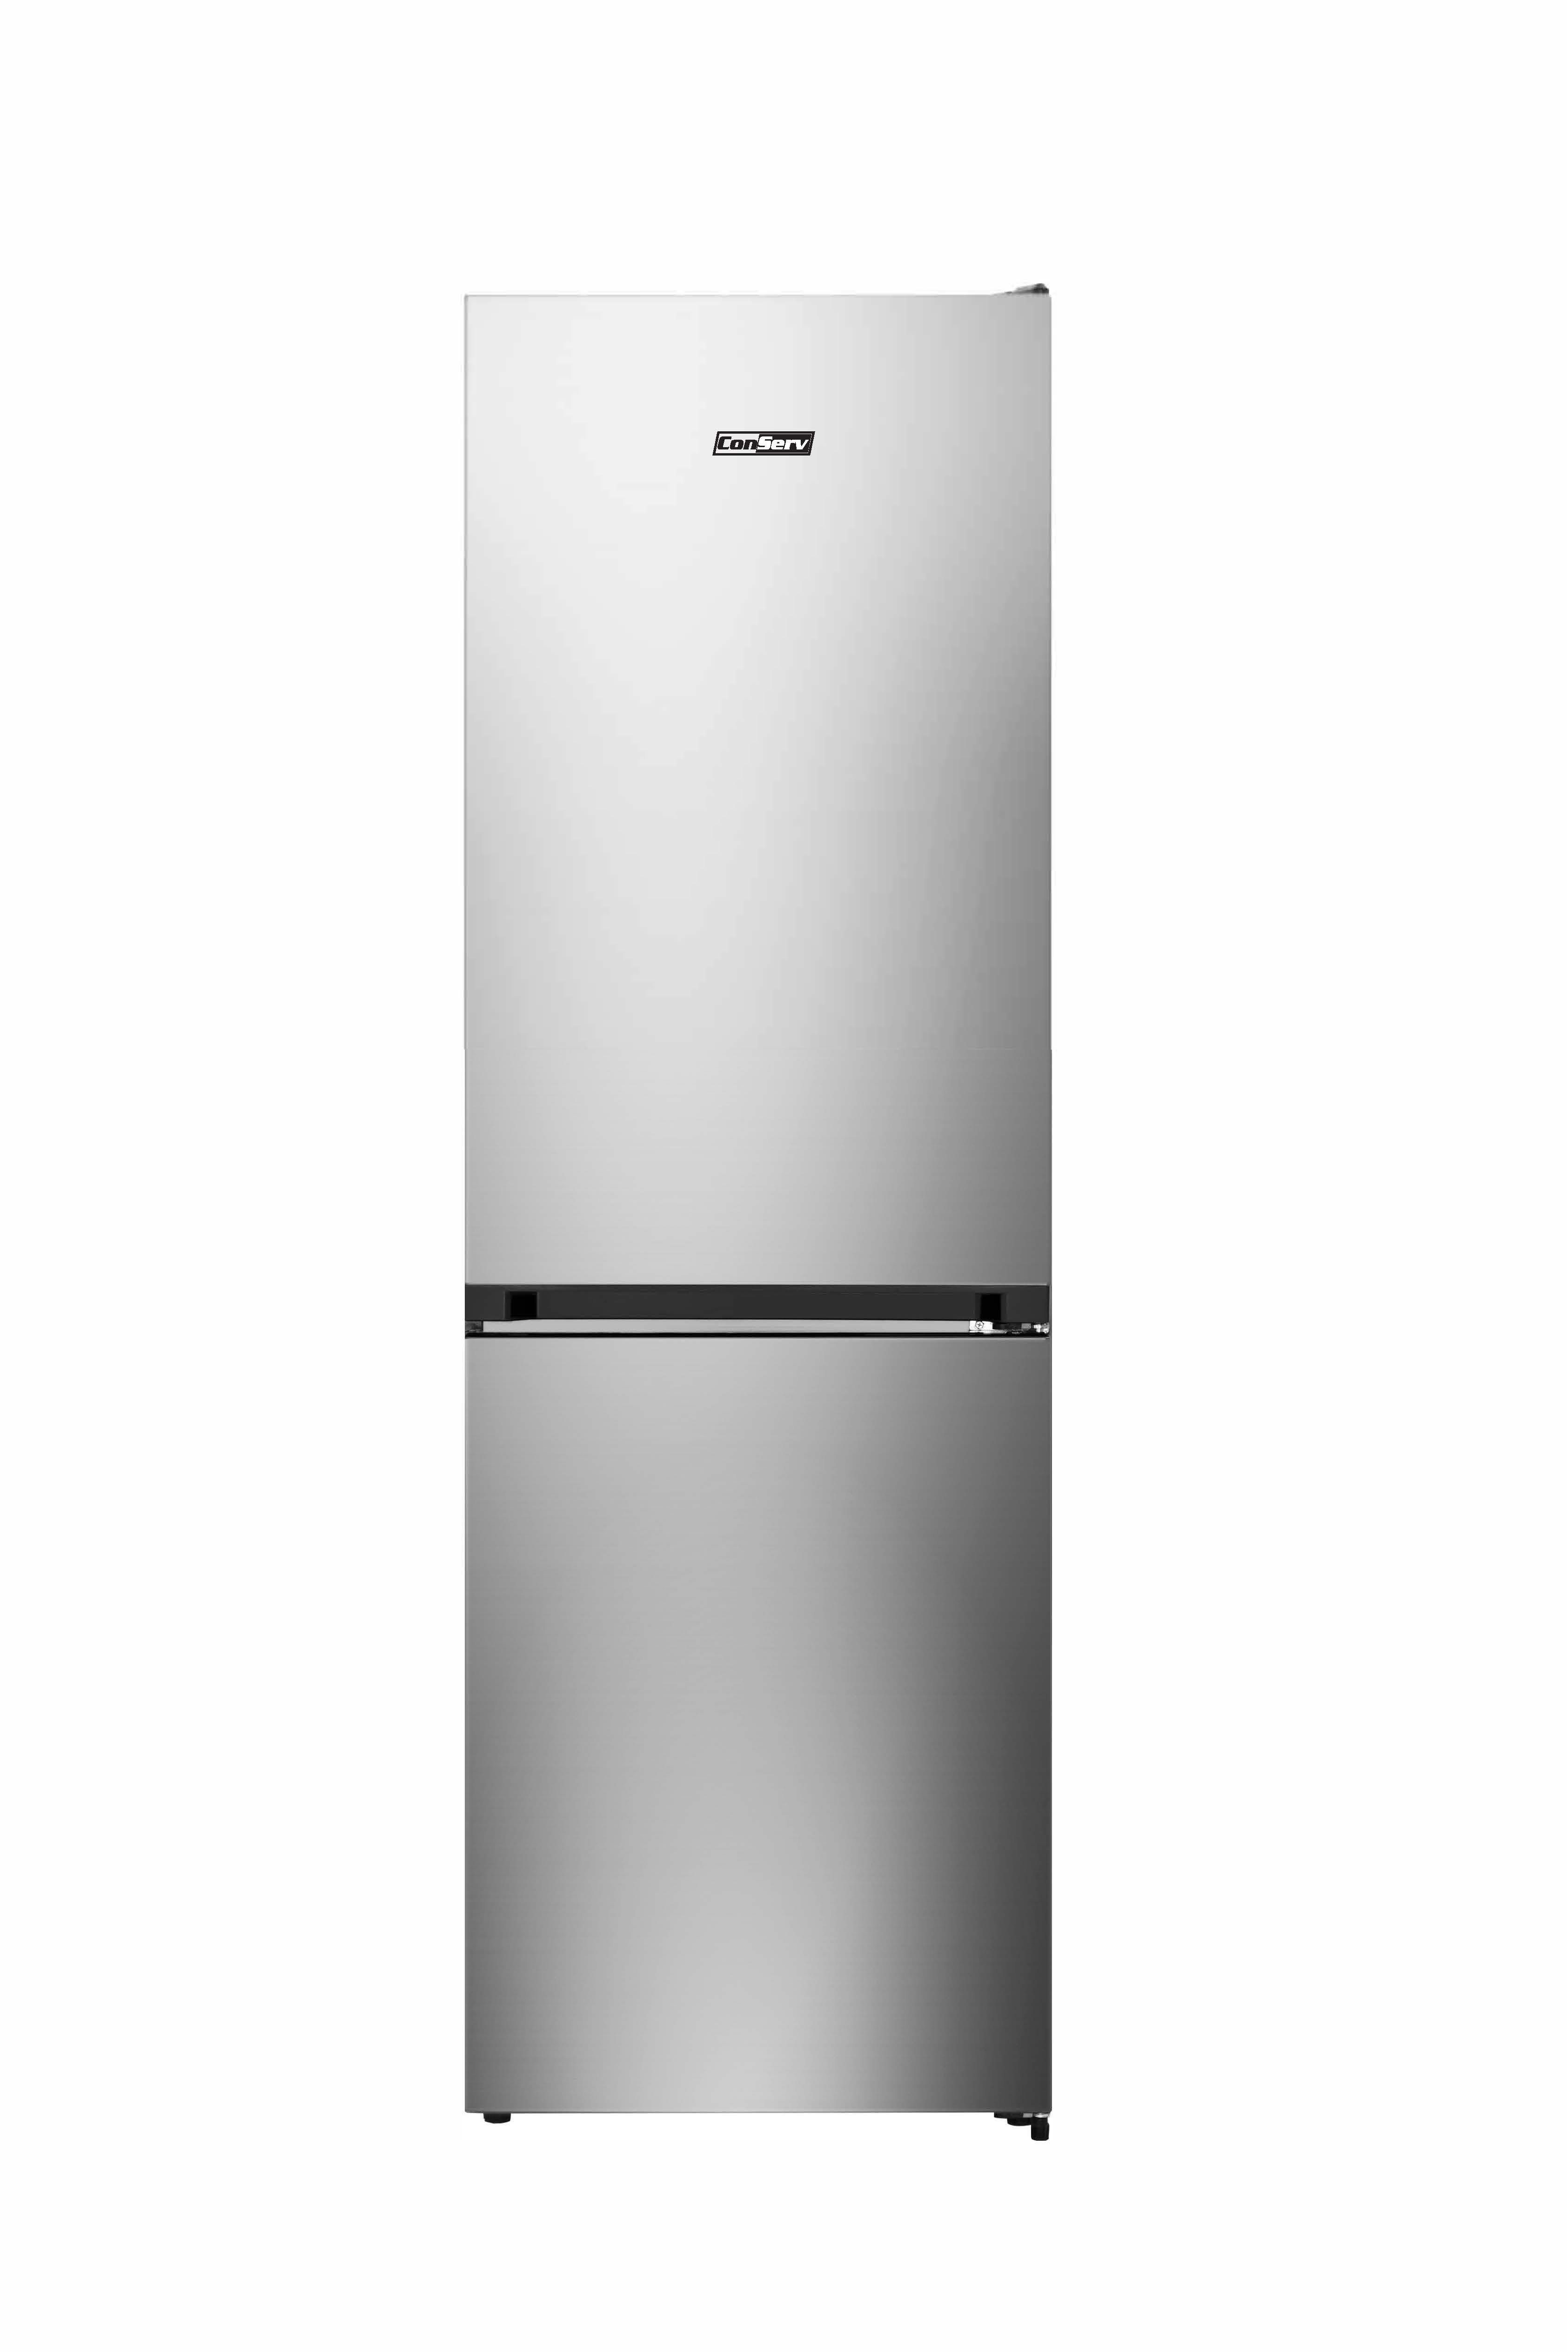 11.5 cu.ft Real Stainless Bottom Freezer Refrigerator